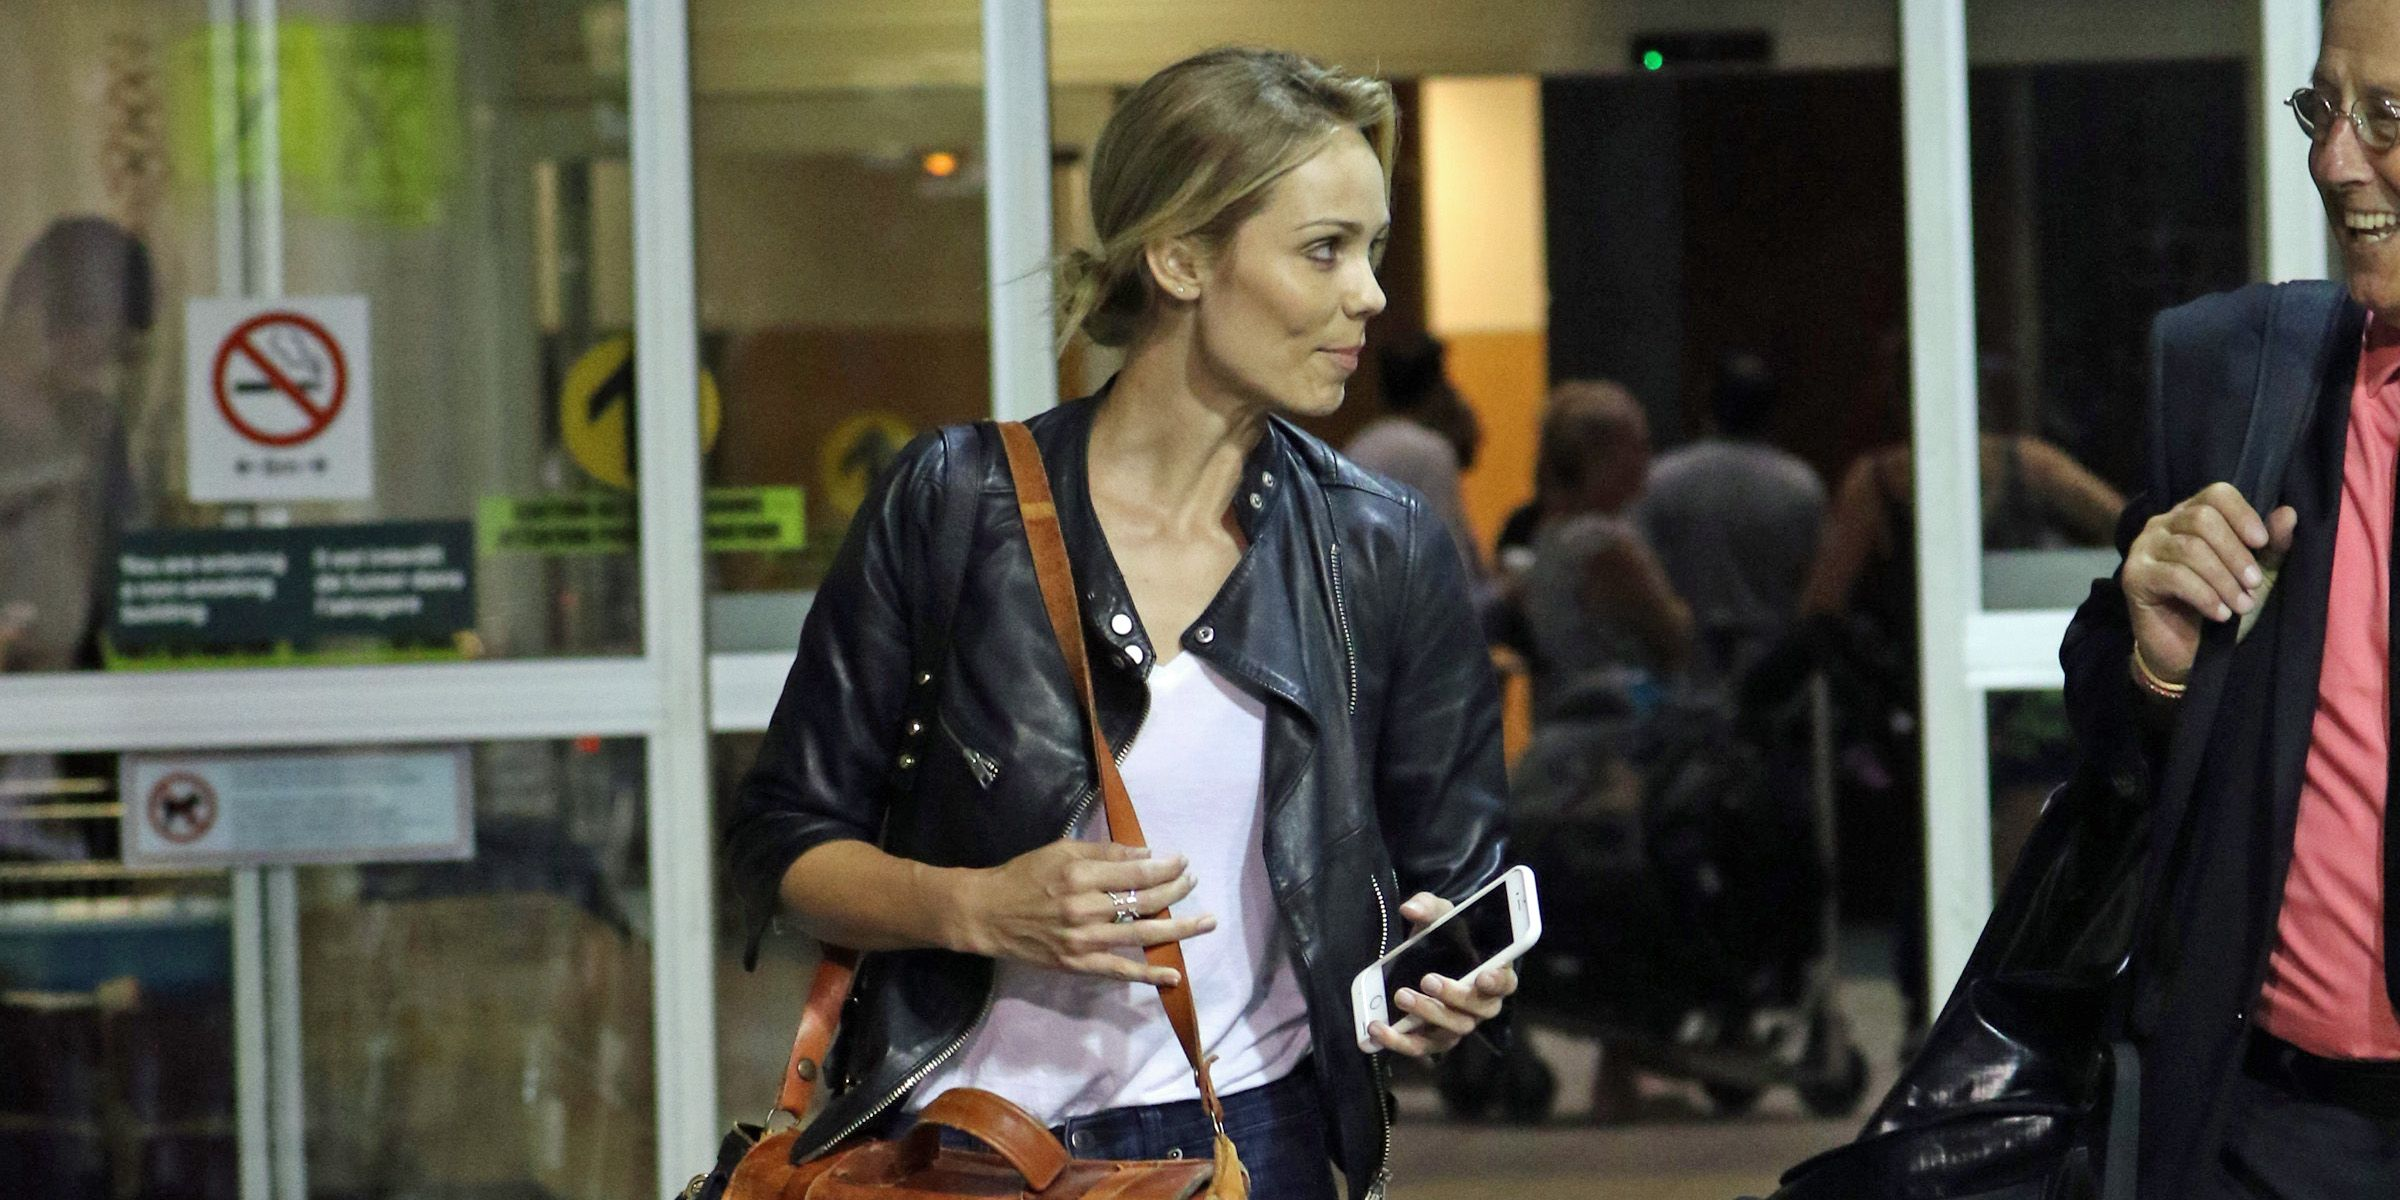 Laura Vandervoort arrives in Vancouver to film 'Ice' (PHOTOS)